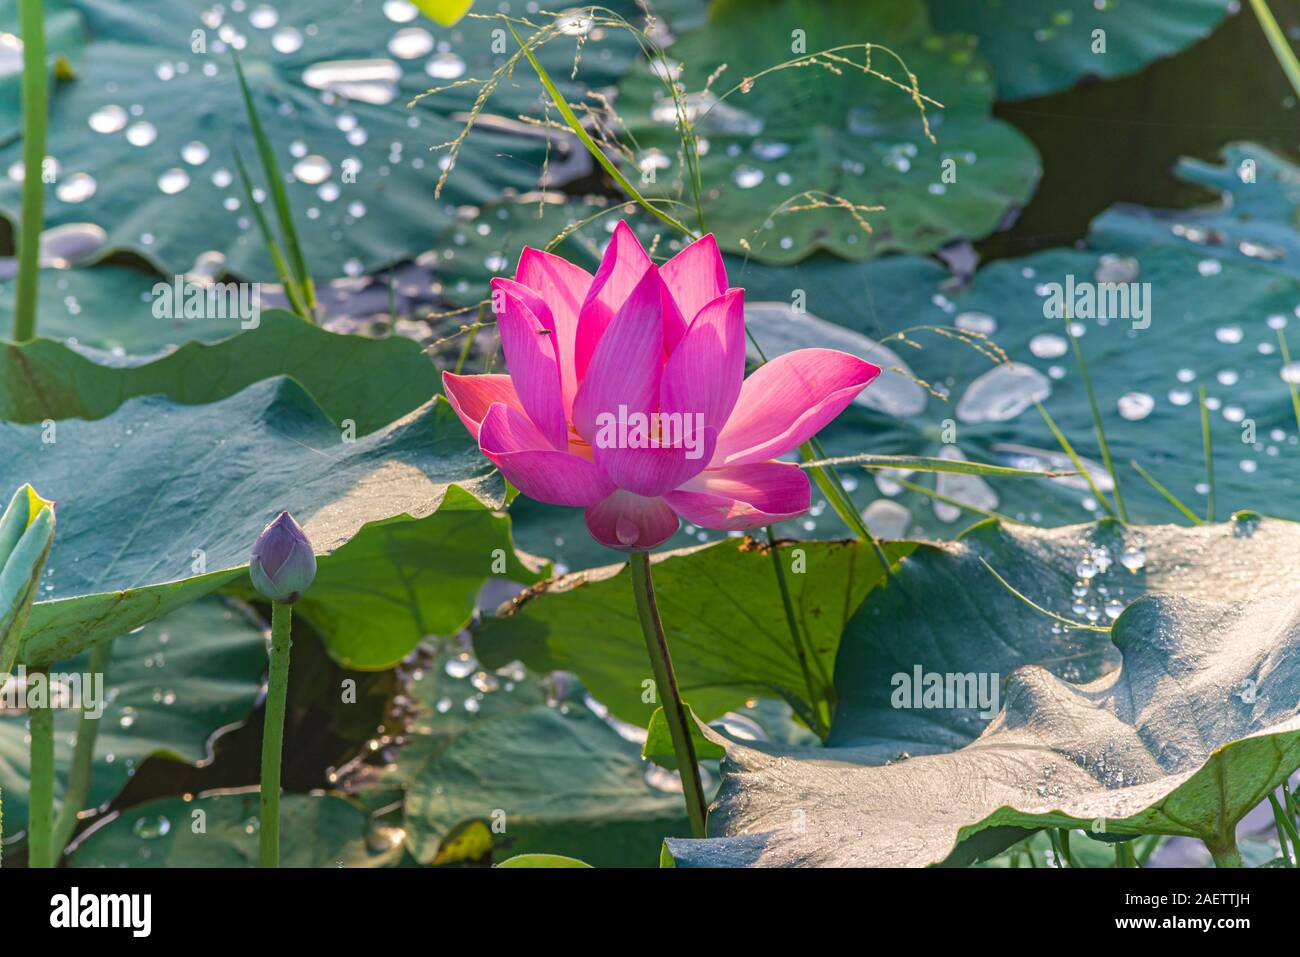 Beautiful Lotus Flower Blooming On The Pond With Green Leaves Stock Photo Alamy